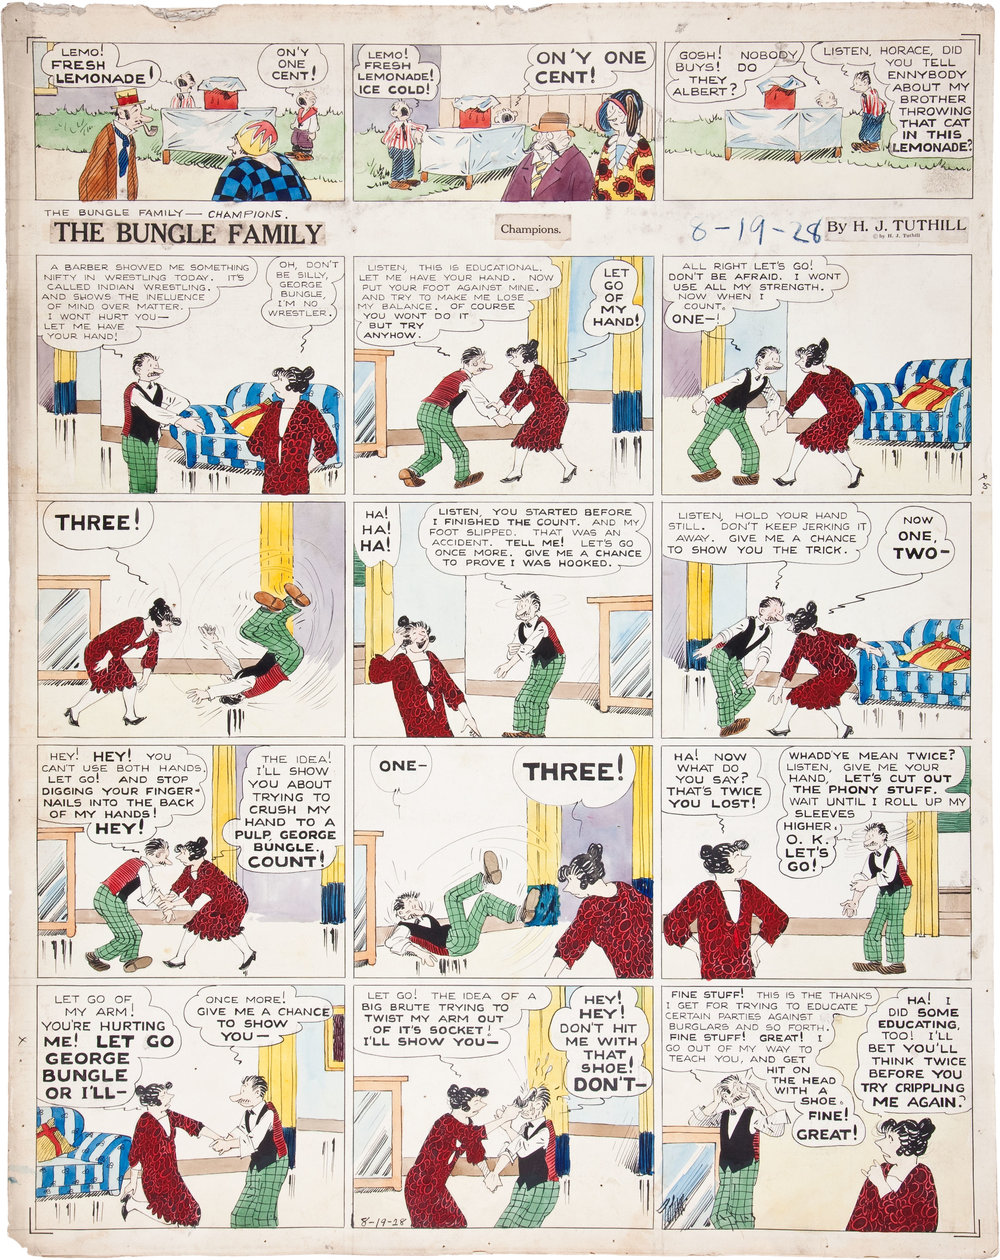 A 1928  Bungle Family  Sunday page. (Click to enlarge; this page is presented large for savoring, so use the zoom feature on your browser to appreciate it properly.)